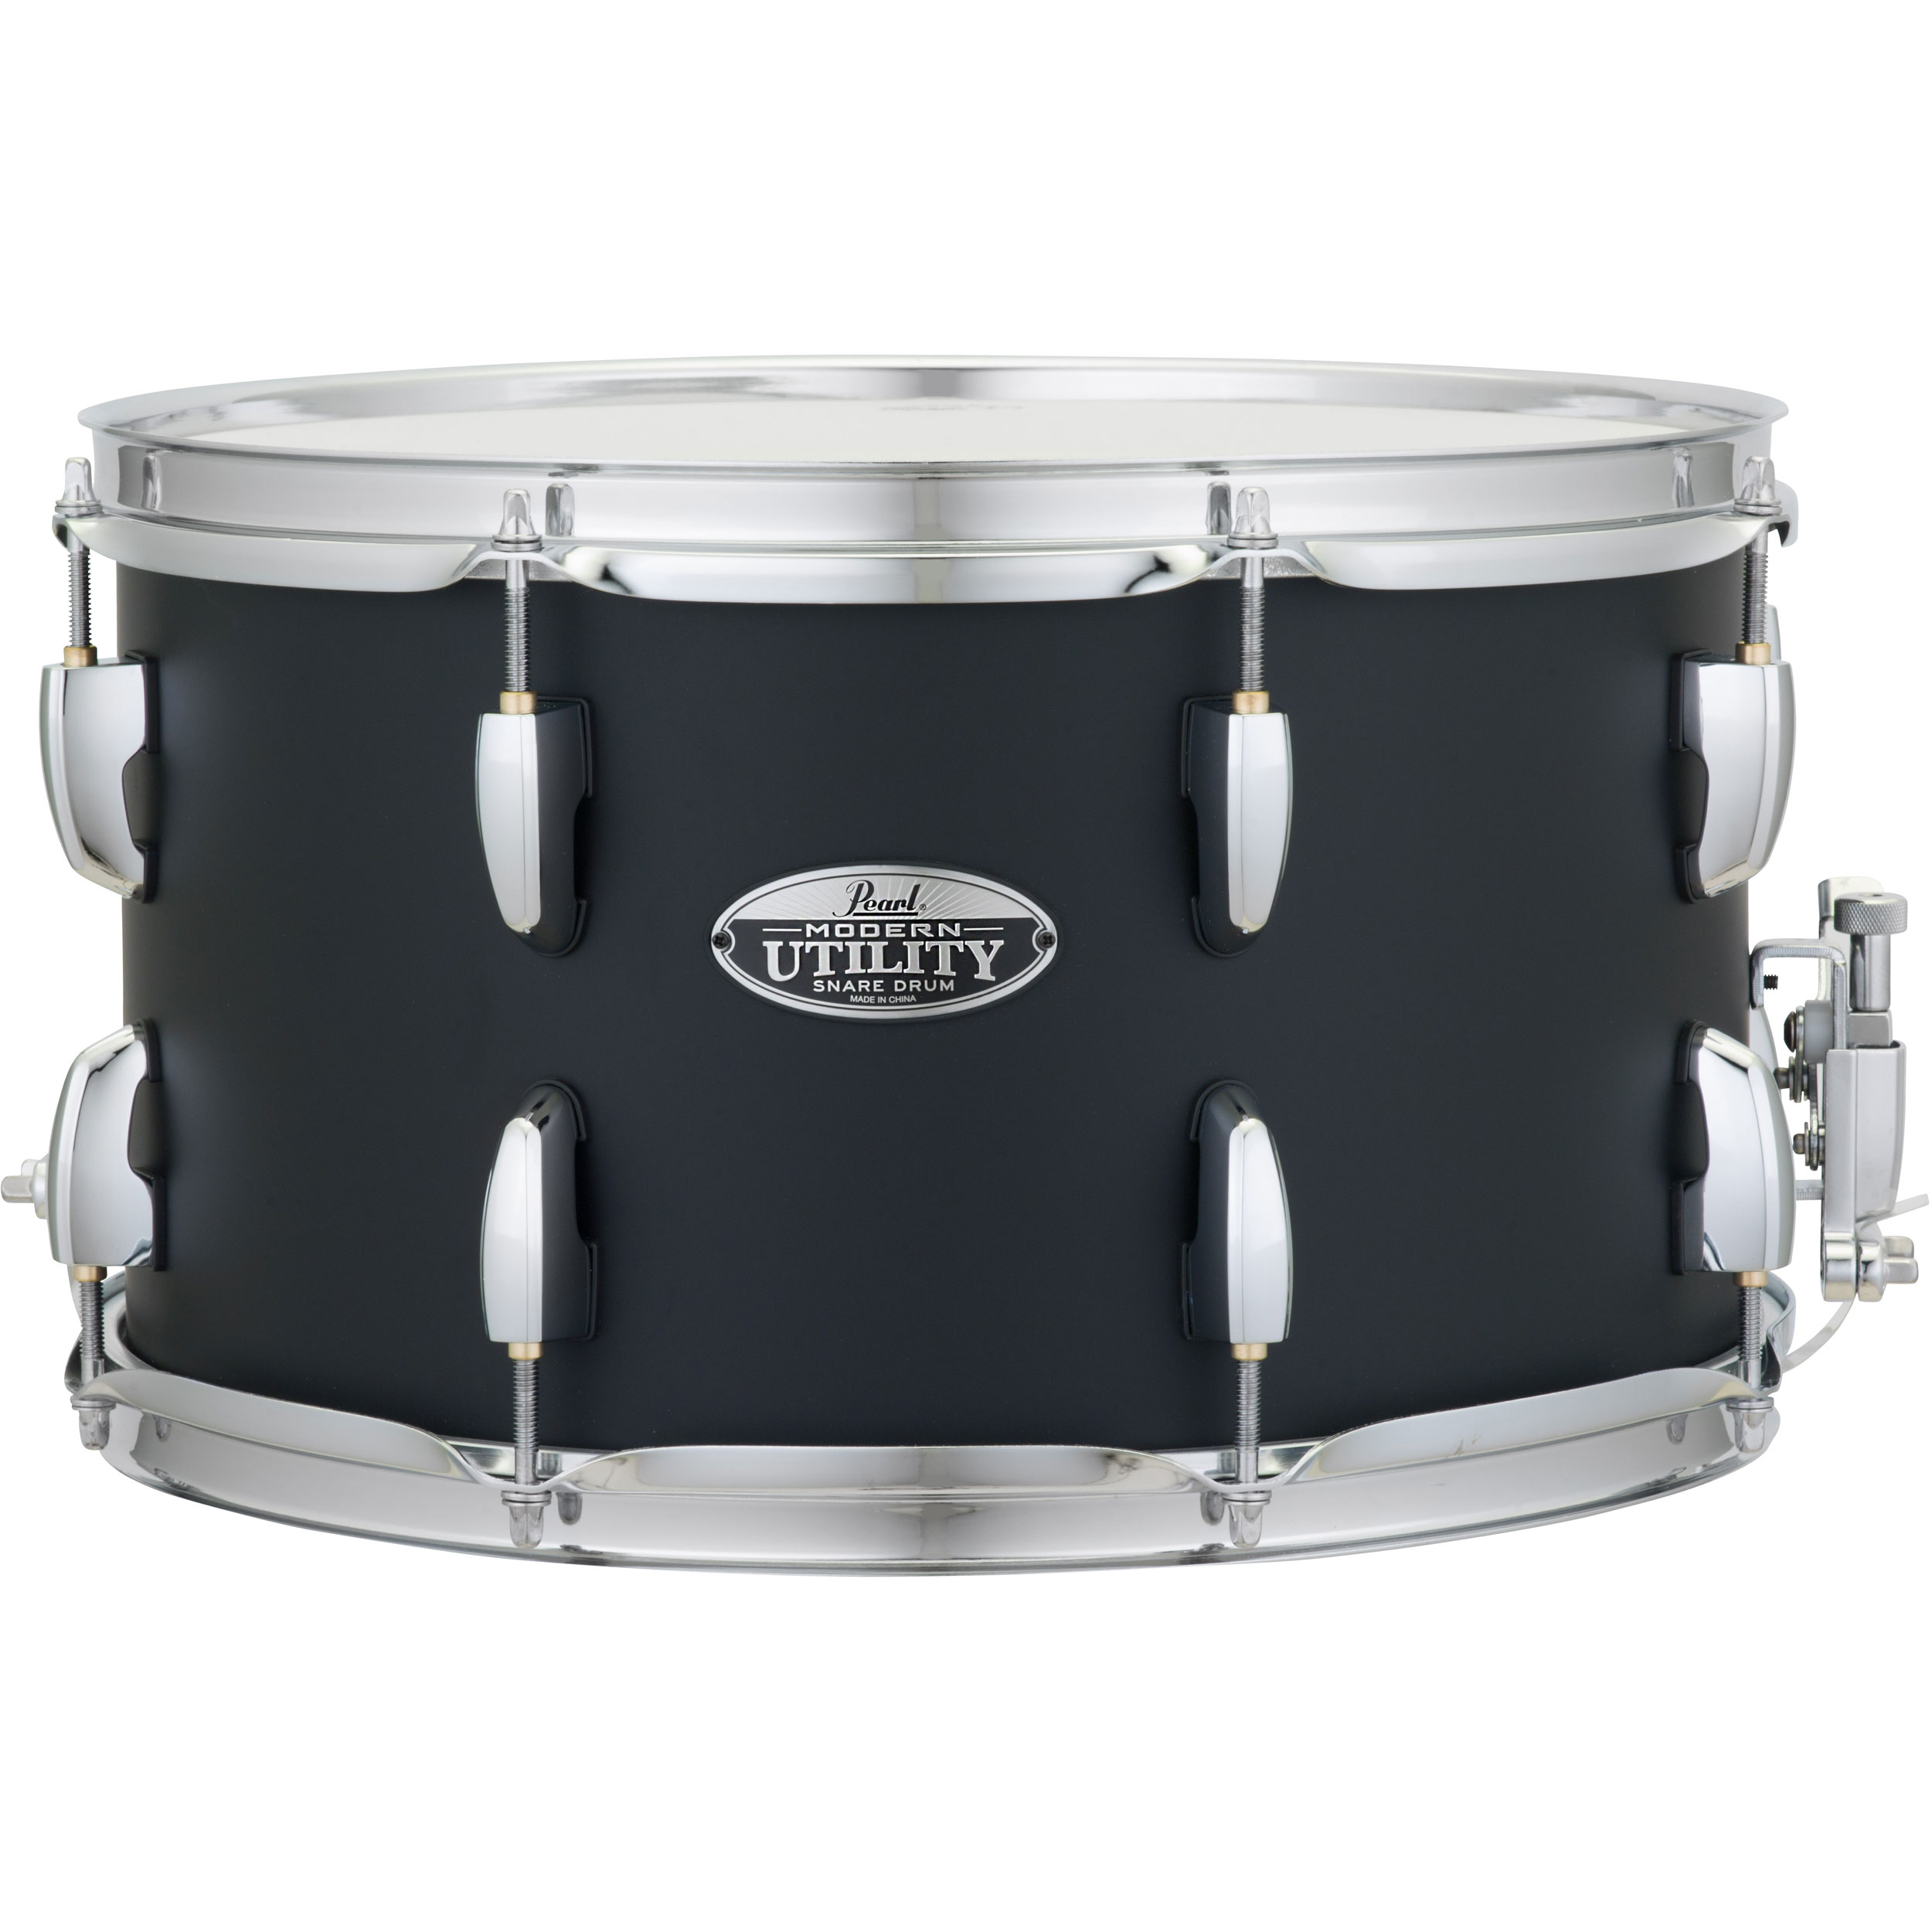 """Pearl 14"""" x 8"""" Modern Utility Maple Snare Drum"""